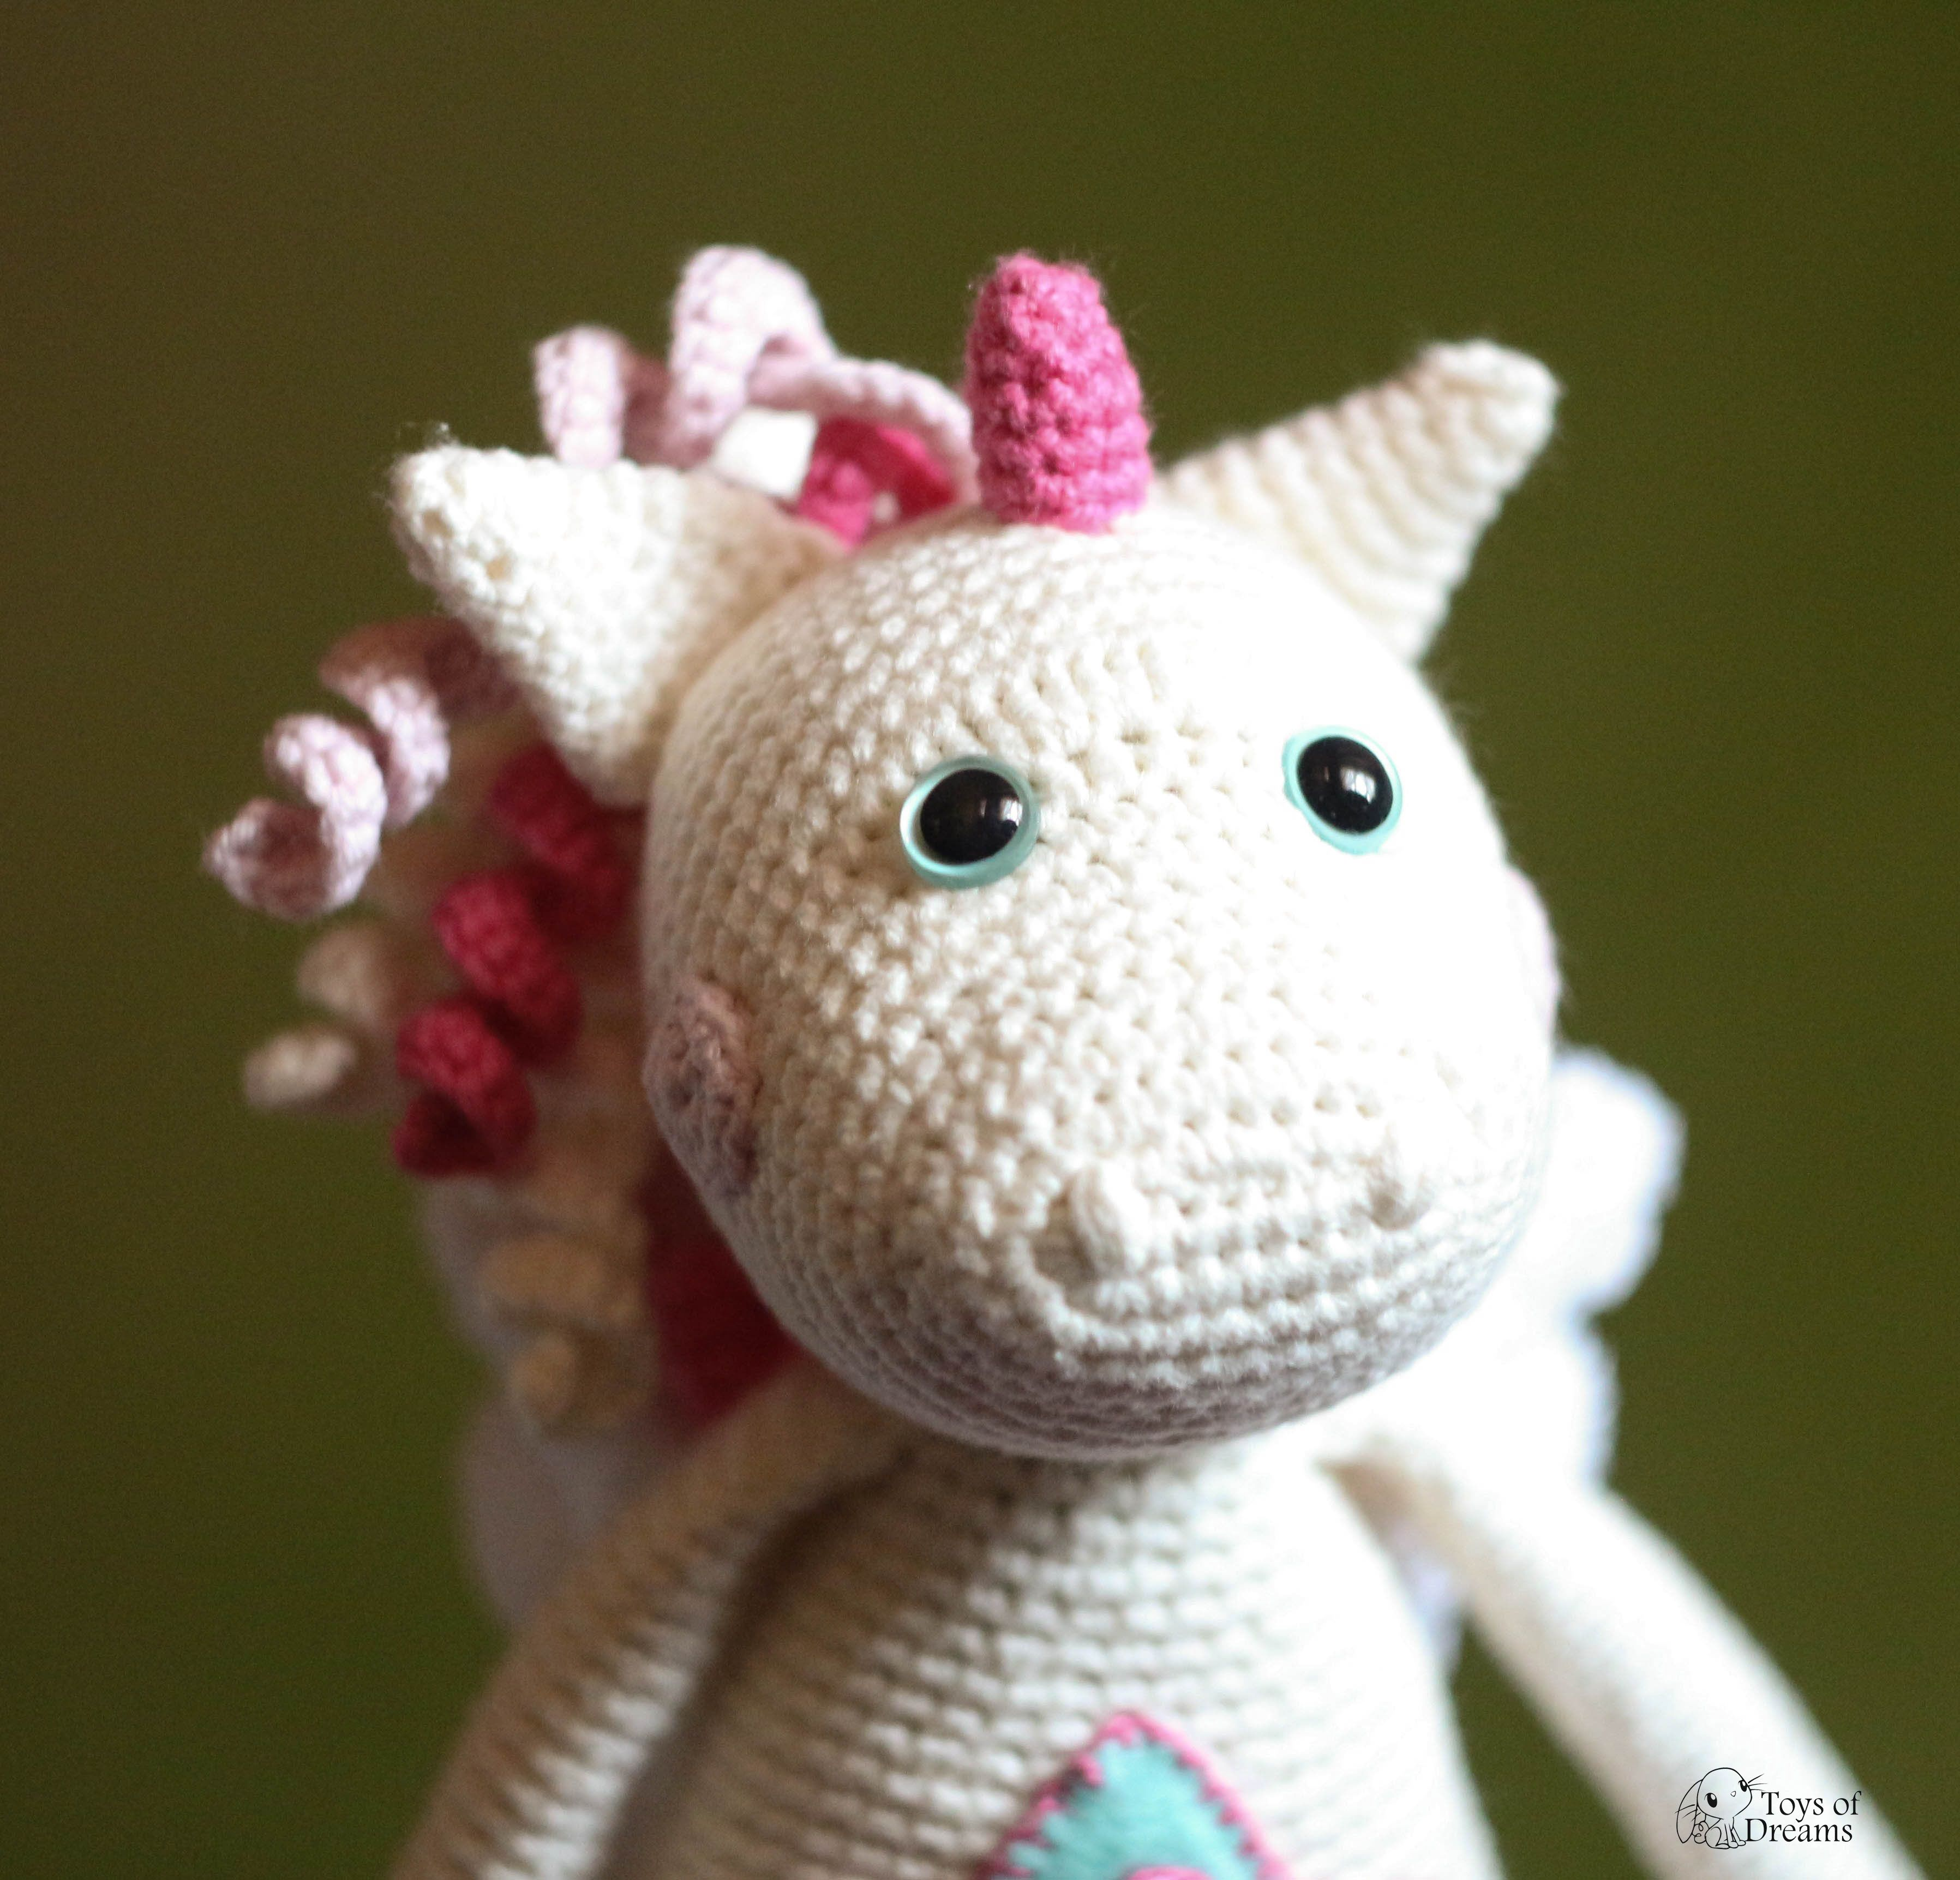 Unicorn toys images  Crochet Unicorn Unicorn Toy Unicorn Amigurumi Rainbow unicorn